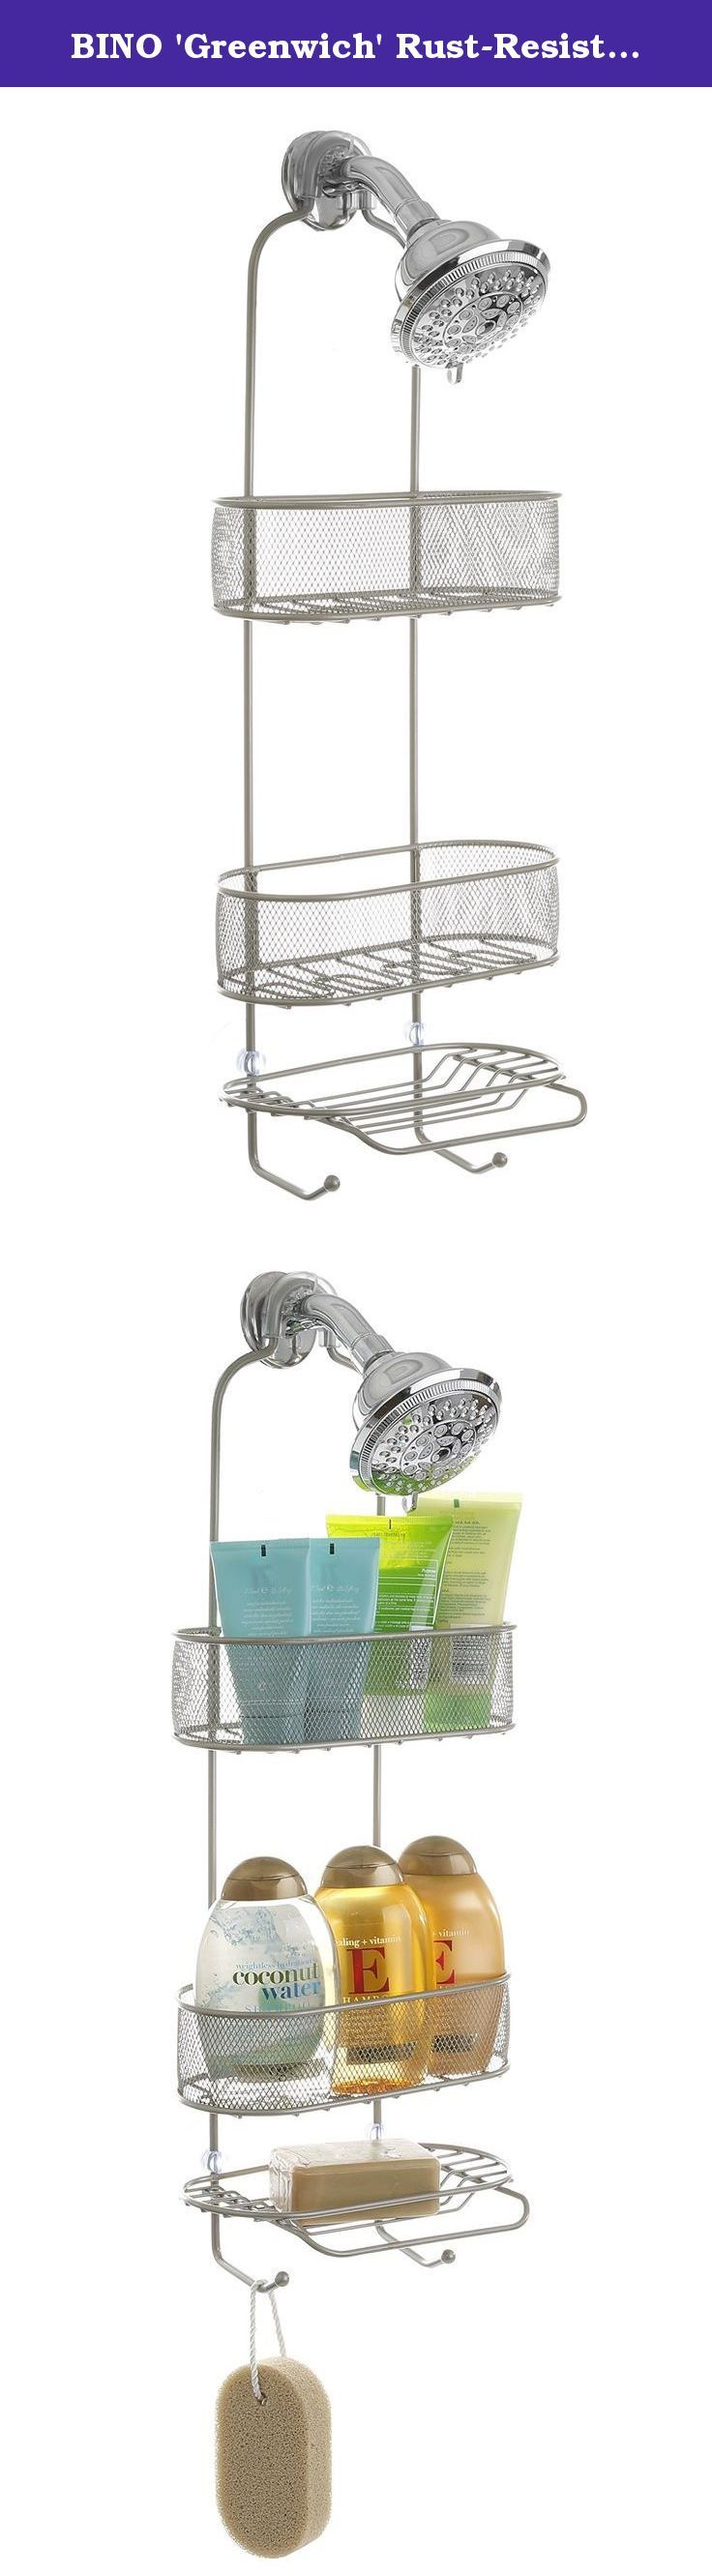 BINO 'Greenwich' Rust-Resistant 3-Shelf Over-the-Showerhead Caddy, Nickel. Greenwich Over-the-Showerhead Caddy by BINO With 2 self-draining baskets and a flat shelf with hooks, this shower caddy has plenty of space to store all your essentials. The non-slip plastic grip helps keep the caddy from slipping off your showerhead and the included suction cups keep it from swaying side to side. Made out of durable steel and powder coated to resist rusting. Accessories not included.